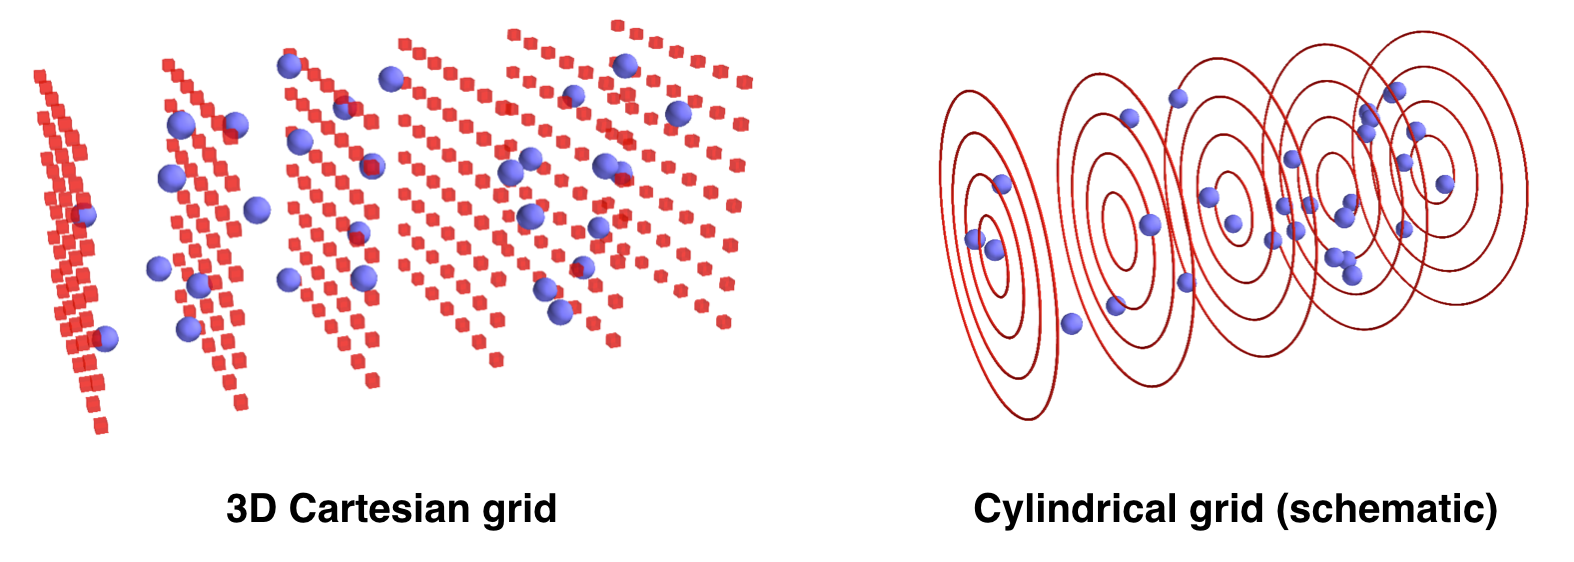 _images/3d_vs_cylindrical.png